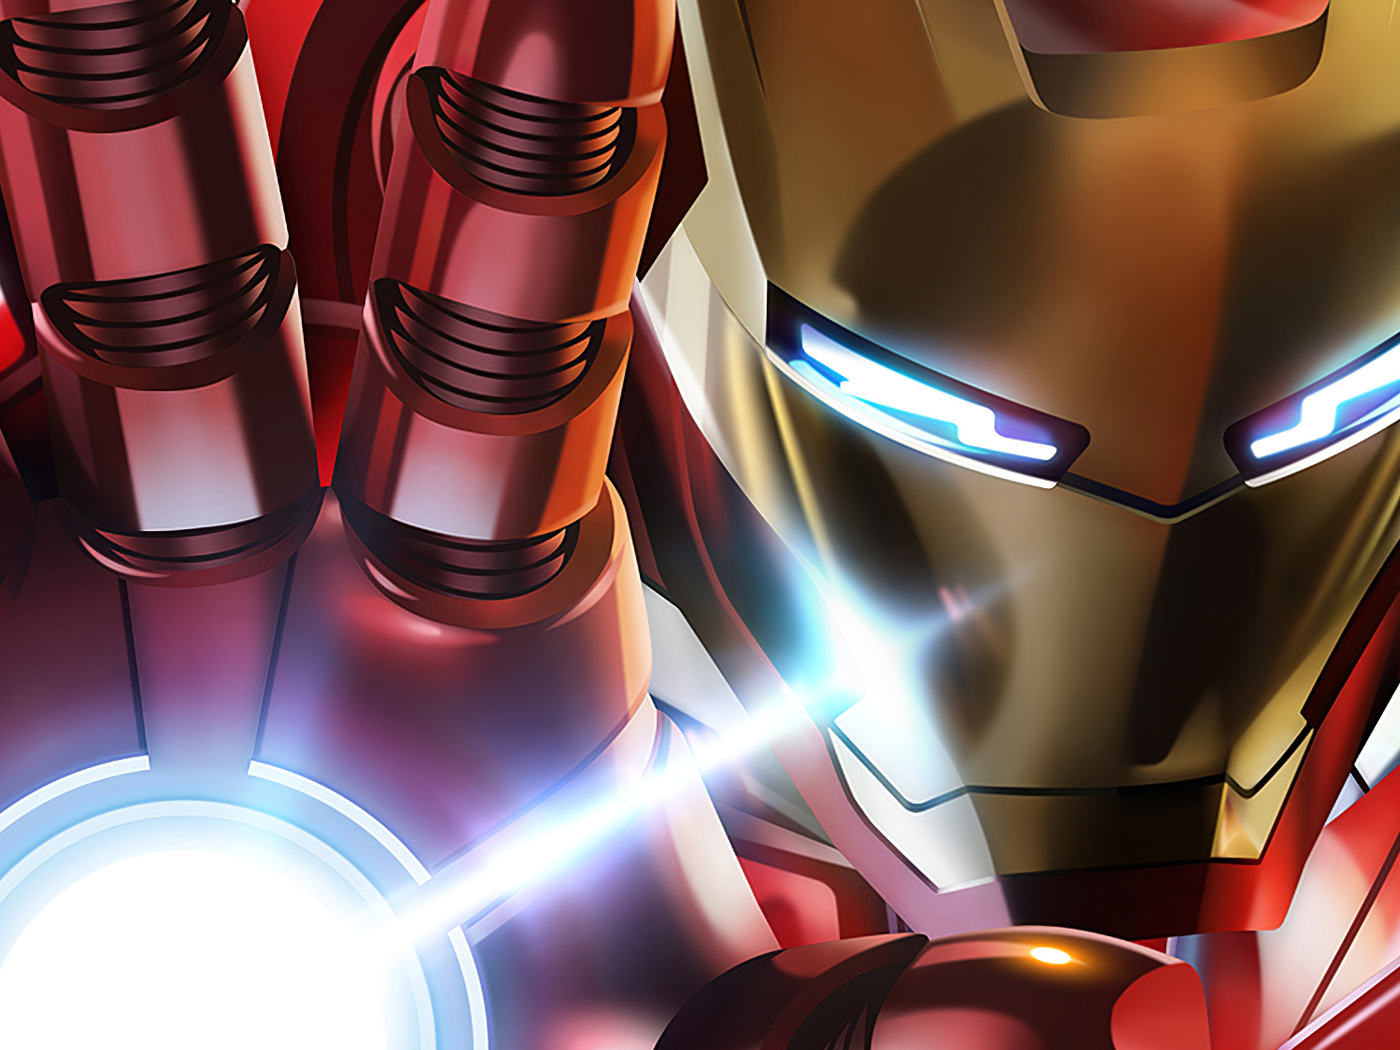 iron-man-mask-closeup-artwork-hb.jpg